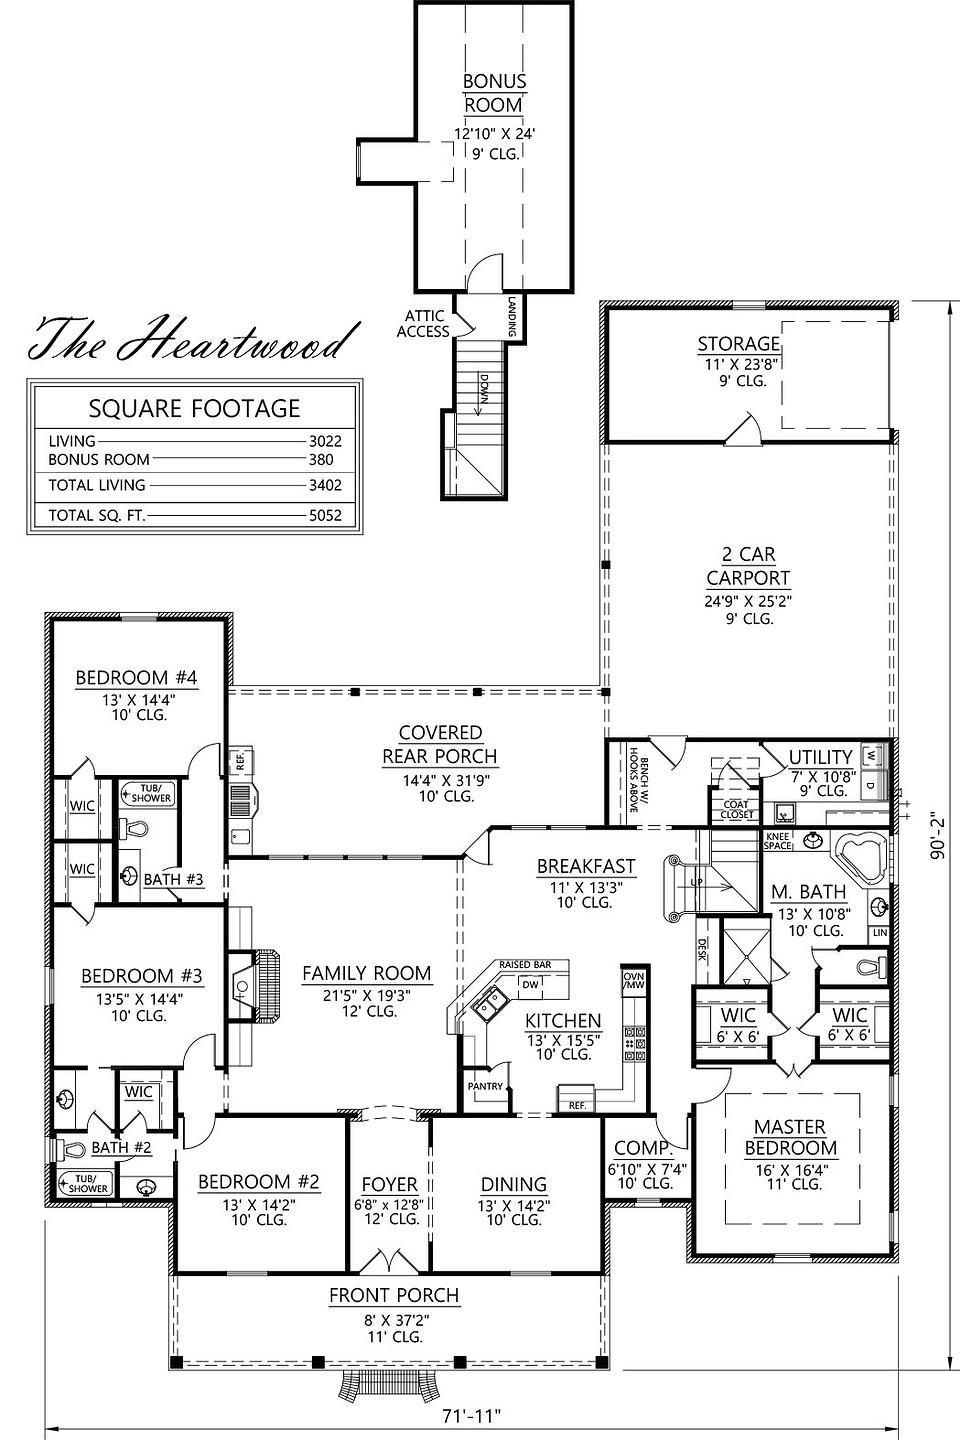 Madden Home Design The Heartwood